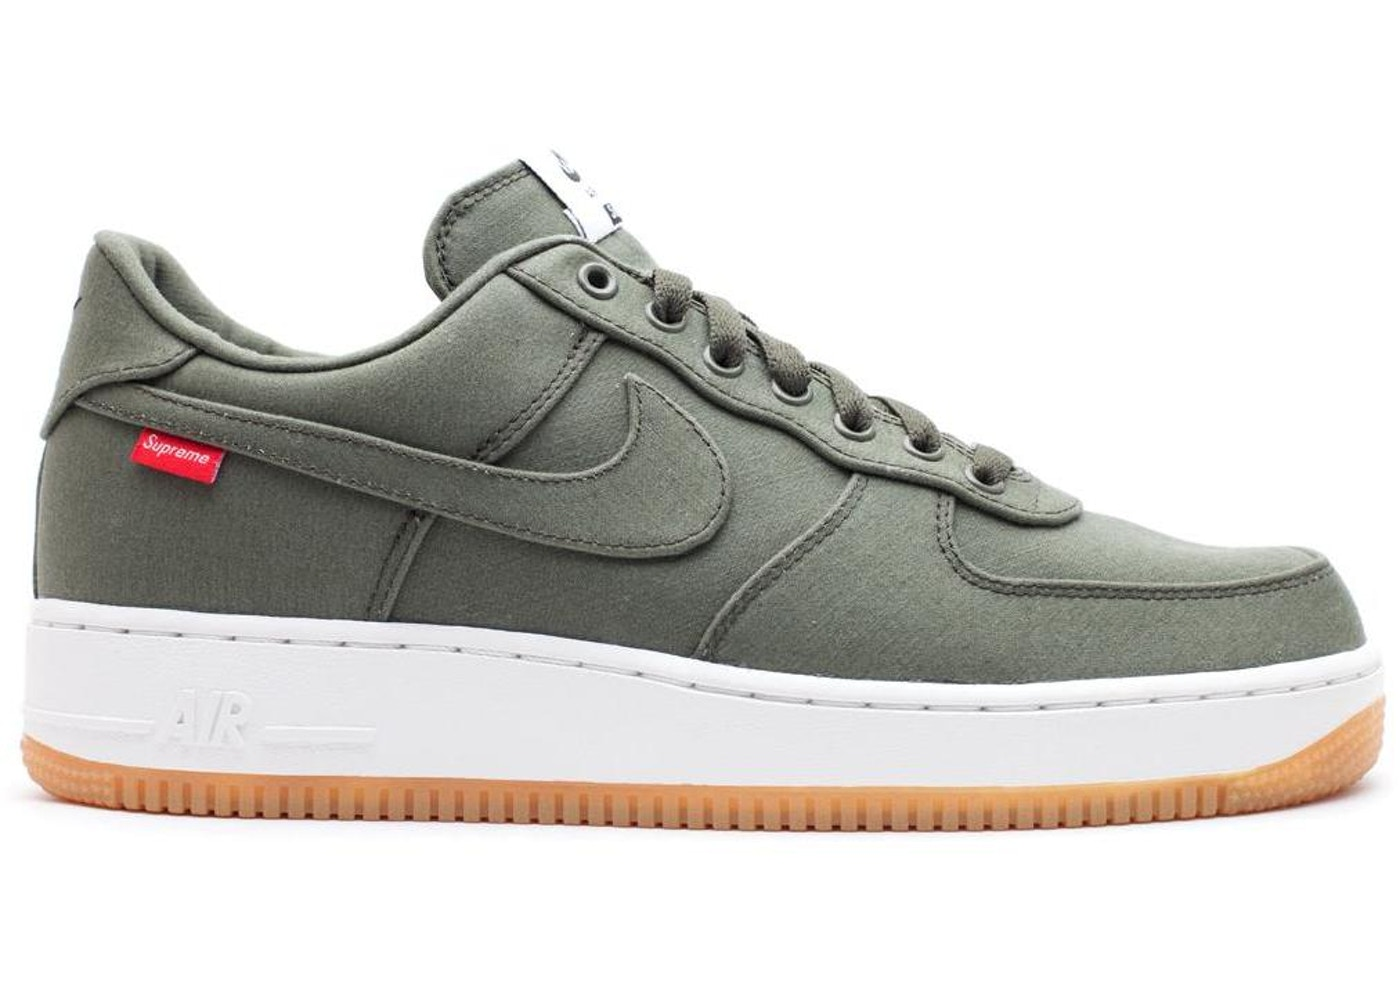 official photos a37f5 4c954 Air Force 1 Low Supreme Olive - 573488-300